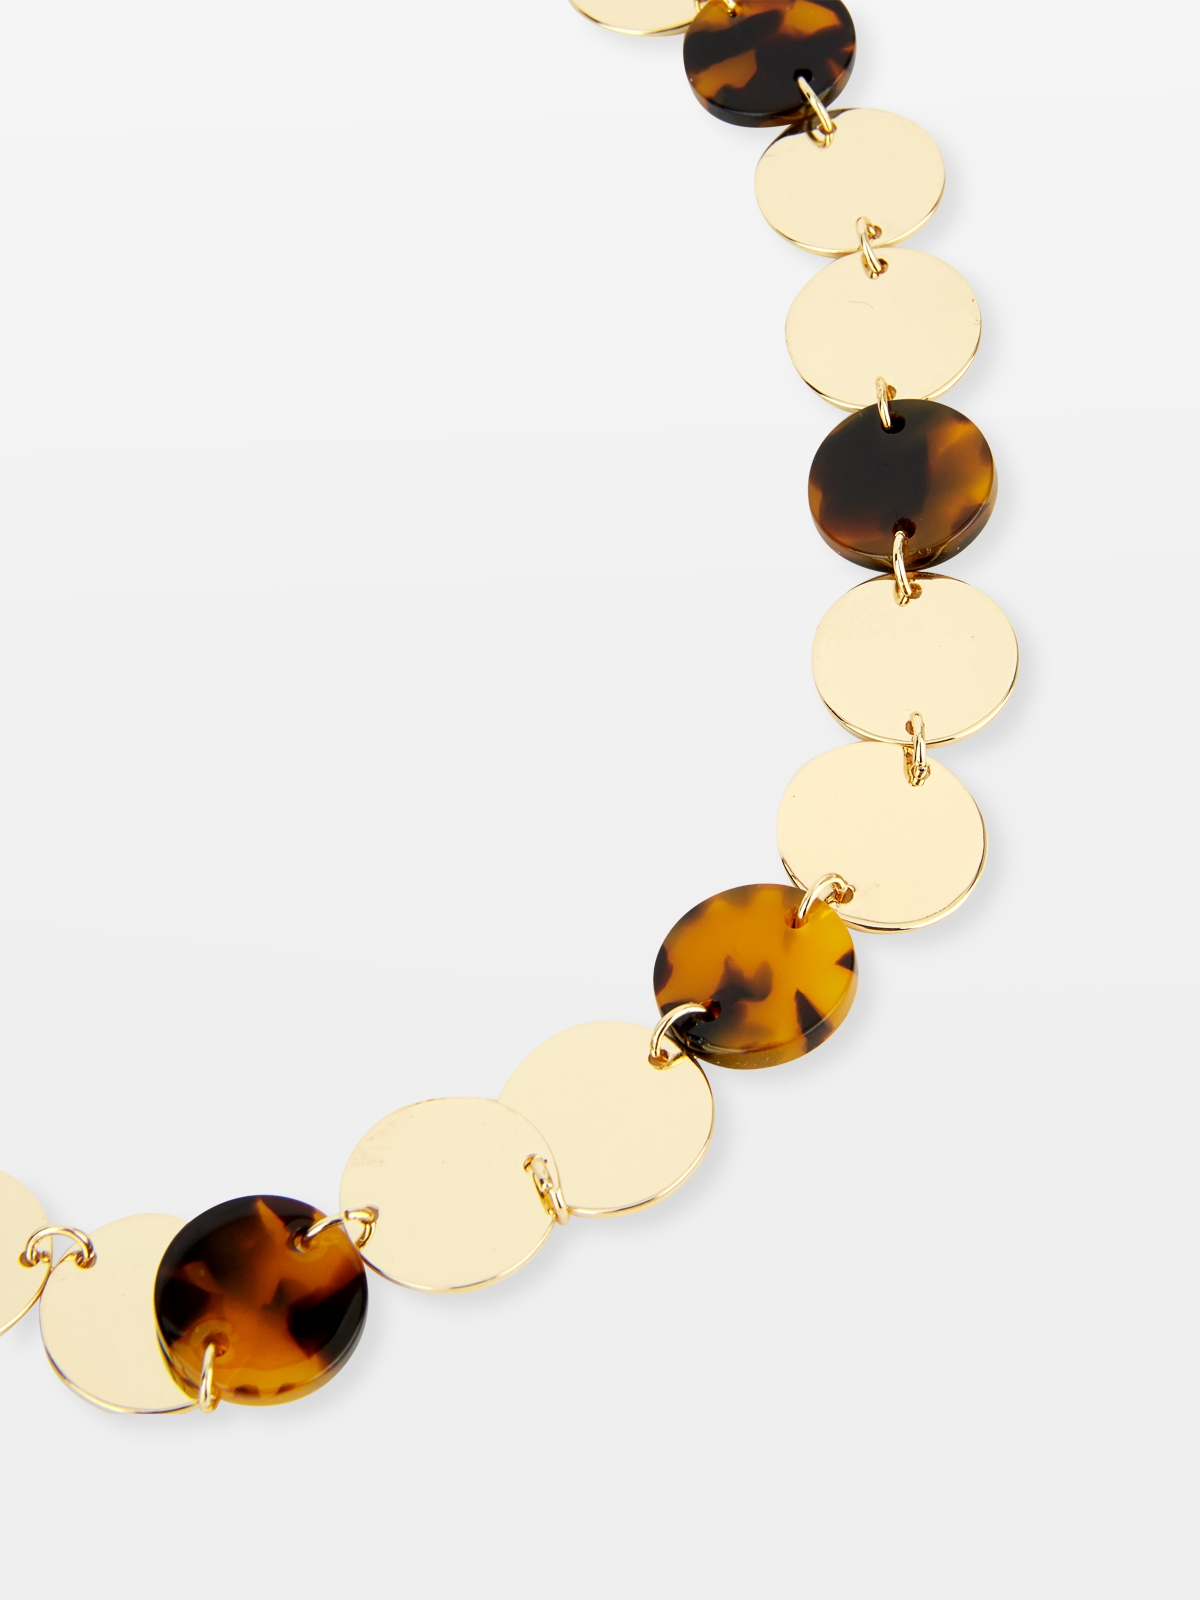 Oversized Circular Chain Necklace Gold